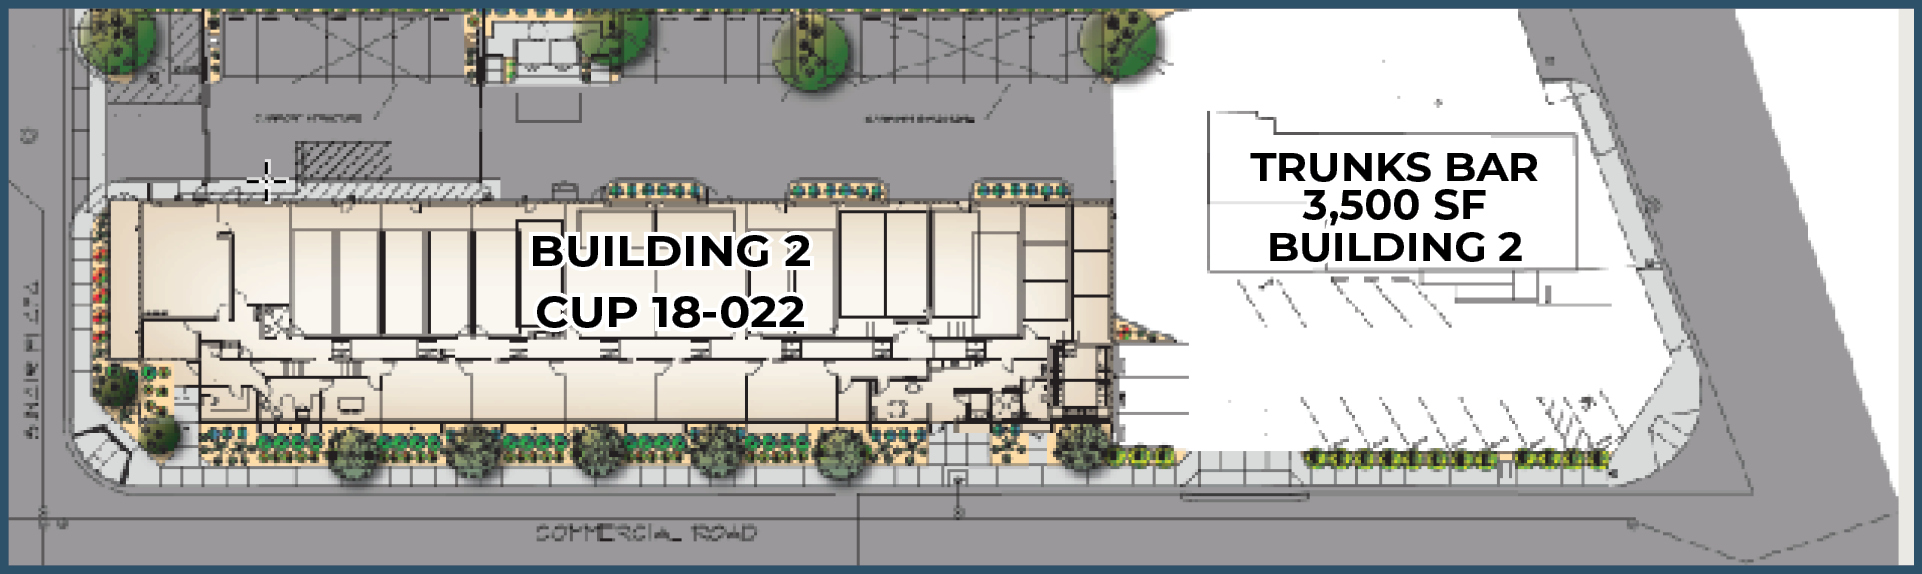 CUP 18-022 Site Plan of 36737 Cathedral Canyon Dr, Cathedral City, CA